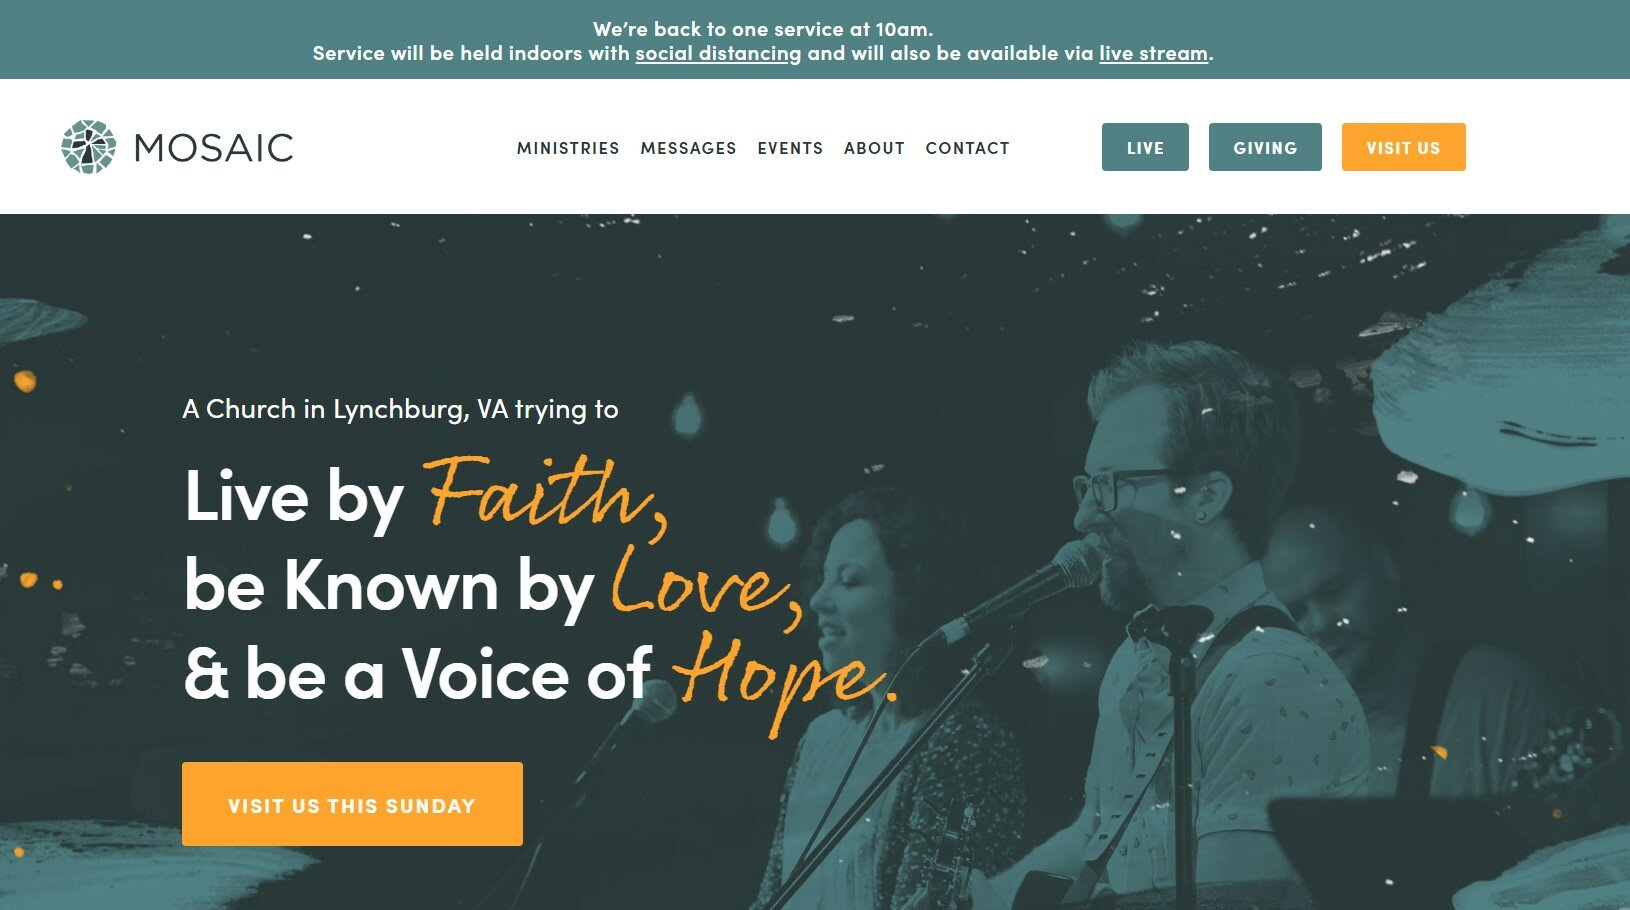 Mosaic Church has one of our favorite church websites.